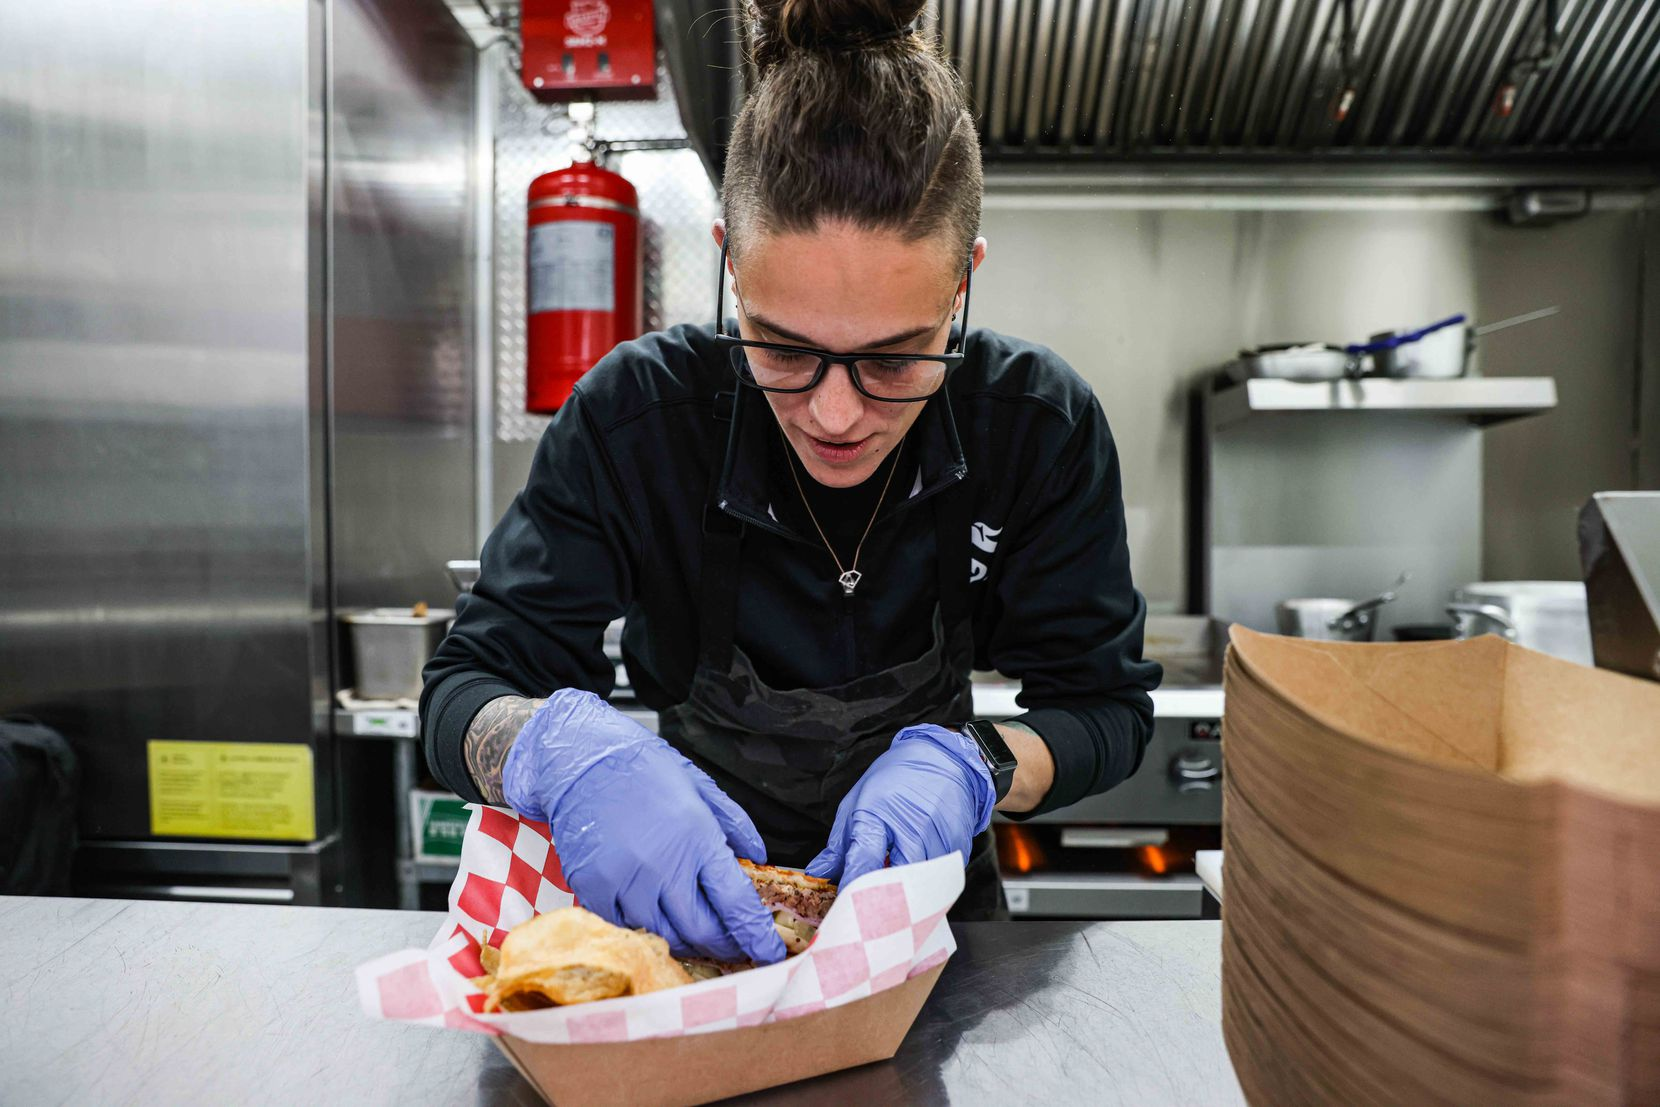 Chef Jordan Savell prepares El Cubano, her signature cuban sandwich with smoked pork shoulder, ham, swiss cheese, chef J's pickles, horseradish mustard and cuban bread in her food truck Bullfish Foods in Fort Worth on Wednesday, March 24, 2021.